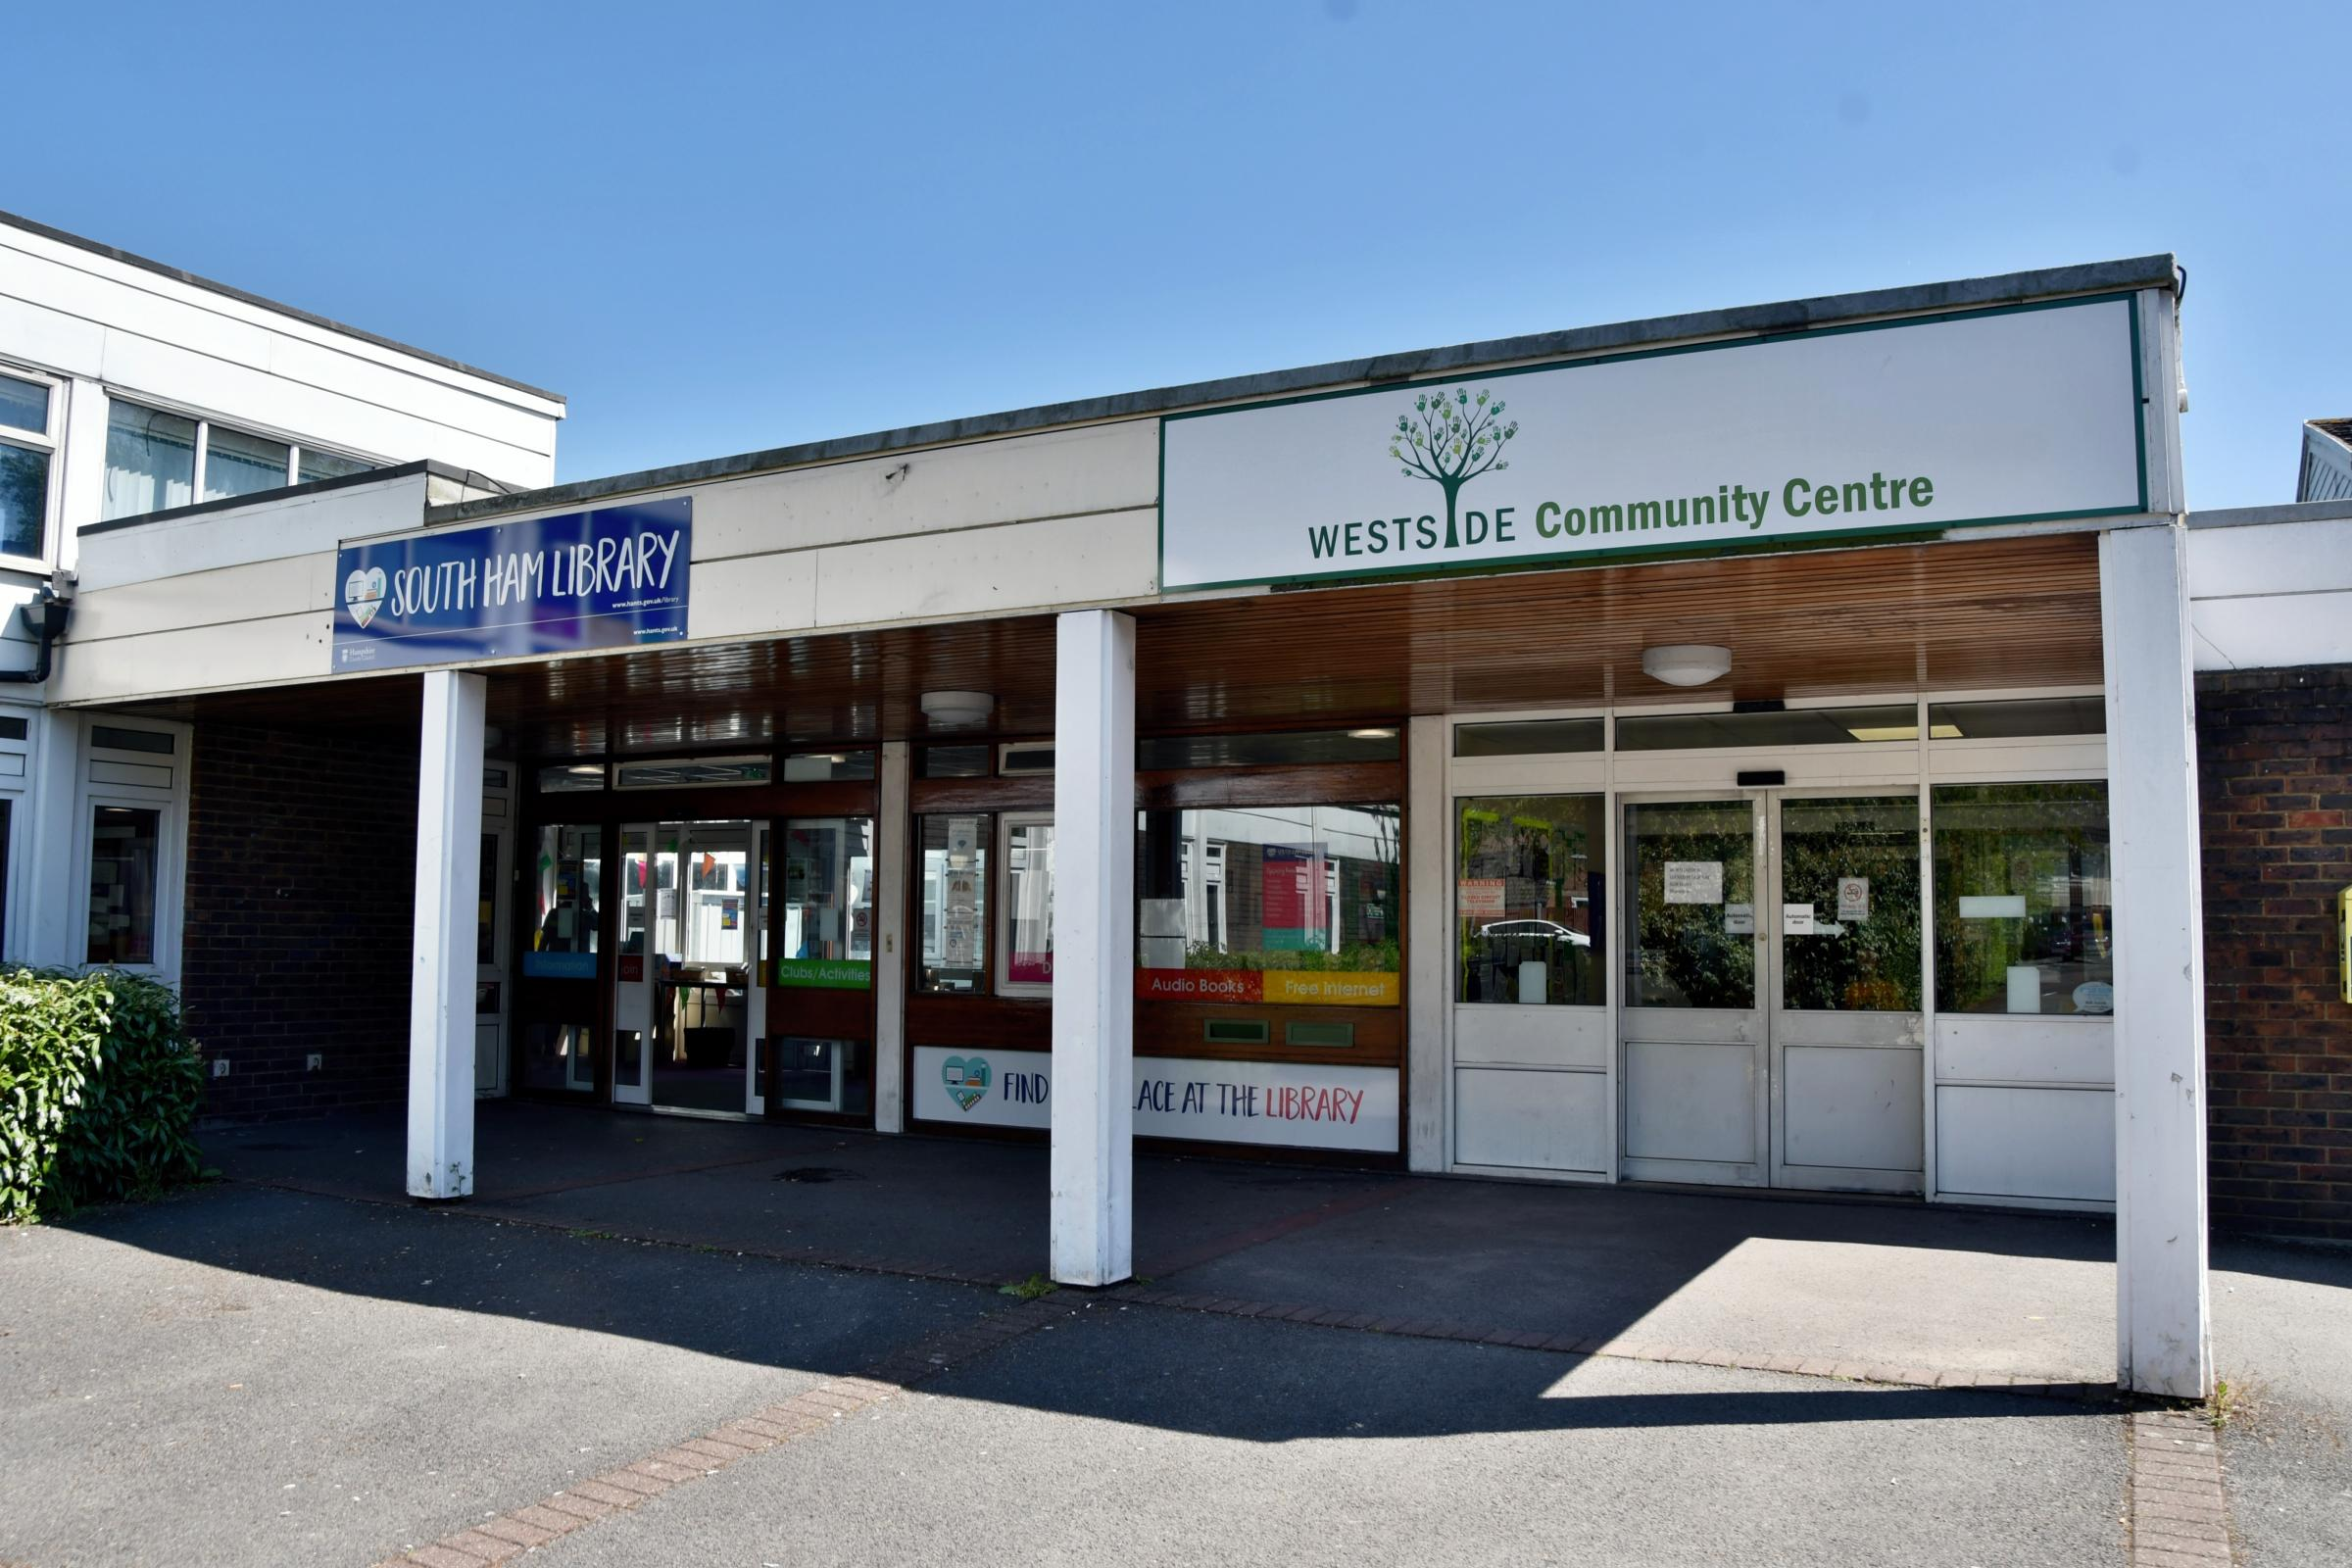 SOUTH HAM, Basingstoke..South Ham library, Basingstoke..Westside Community Centre...Photograph By: Sean Dillow..www.TheBigCheesePhotography.co.uk.